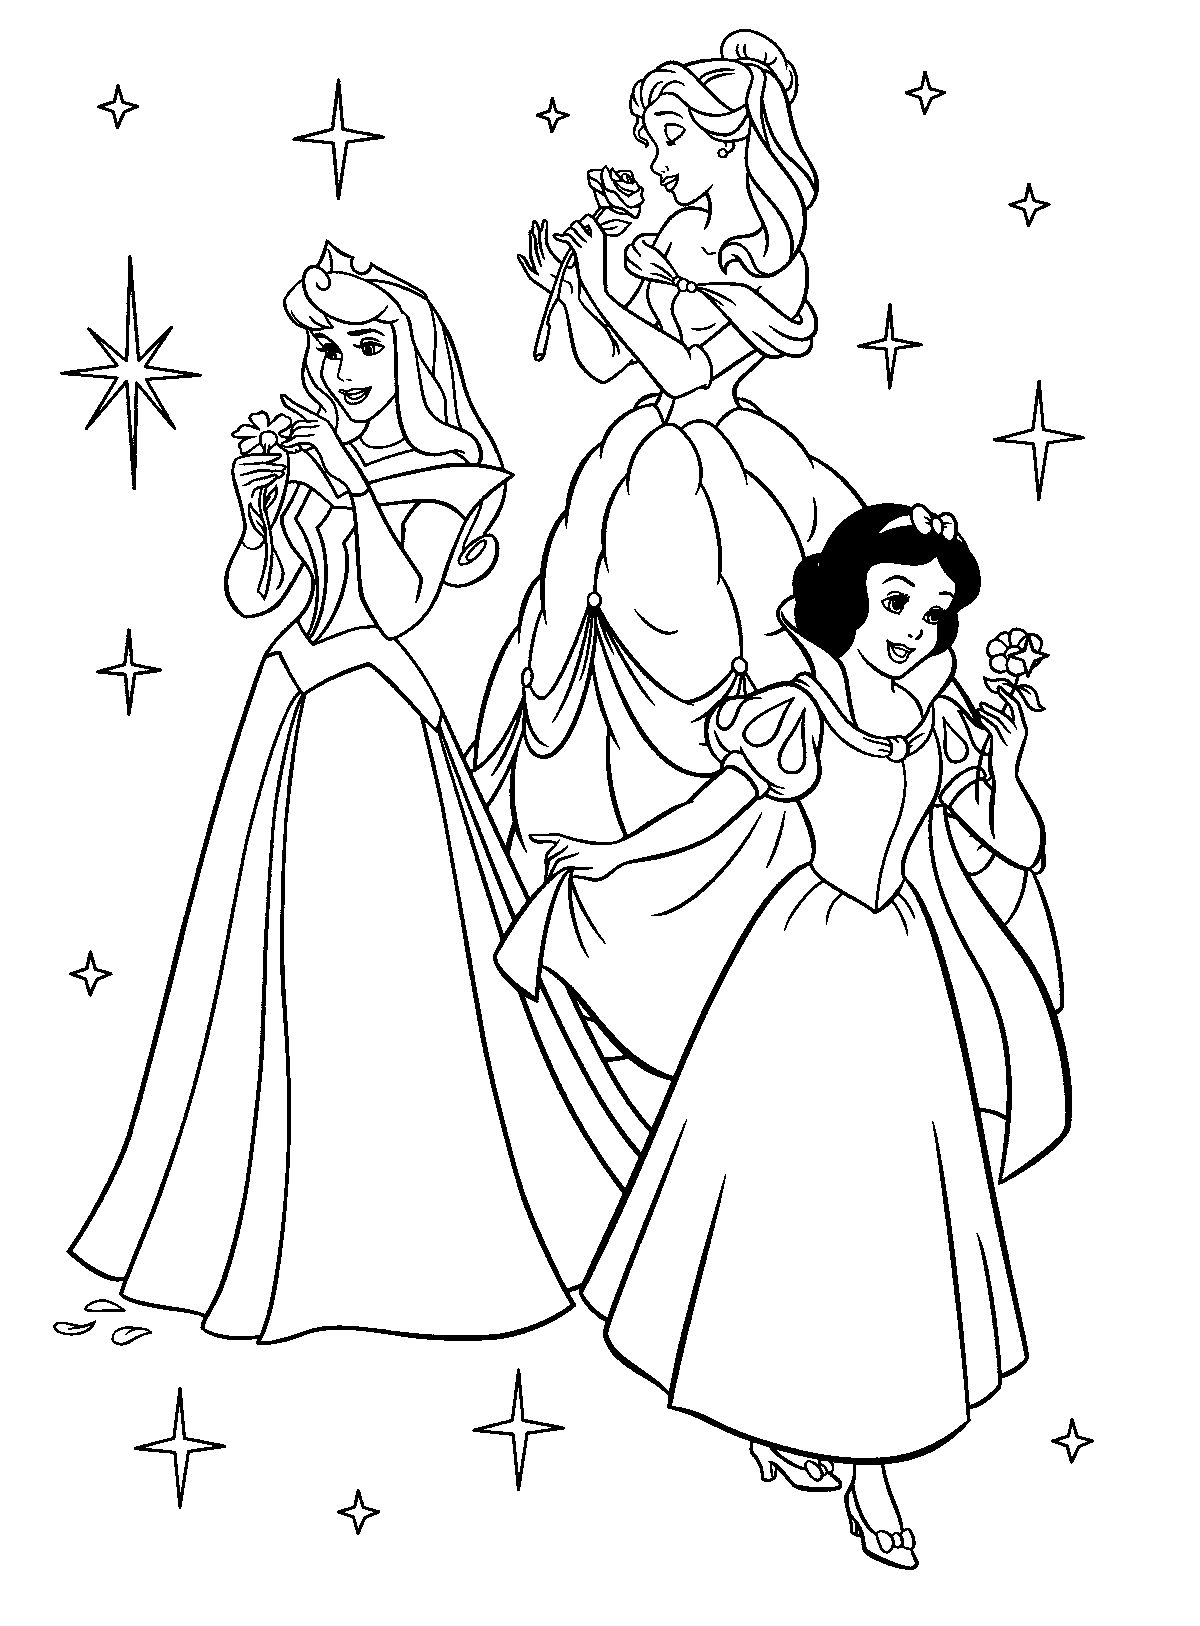 Free Printable Disney Princess Coloring Pages For Kids ...